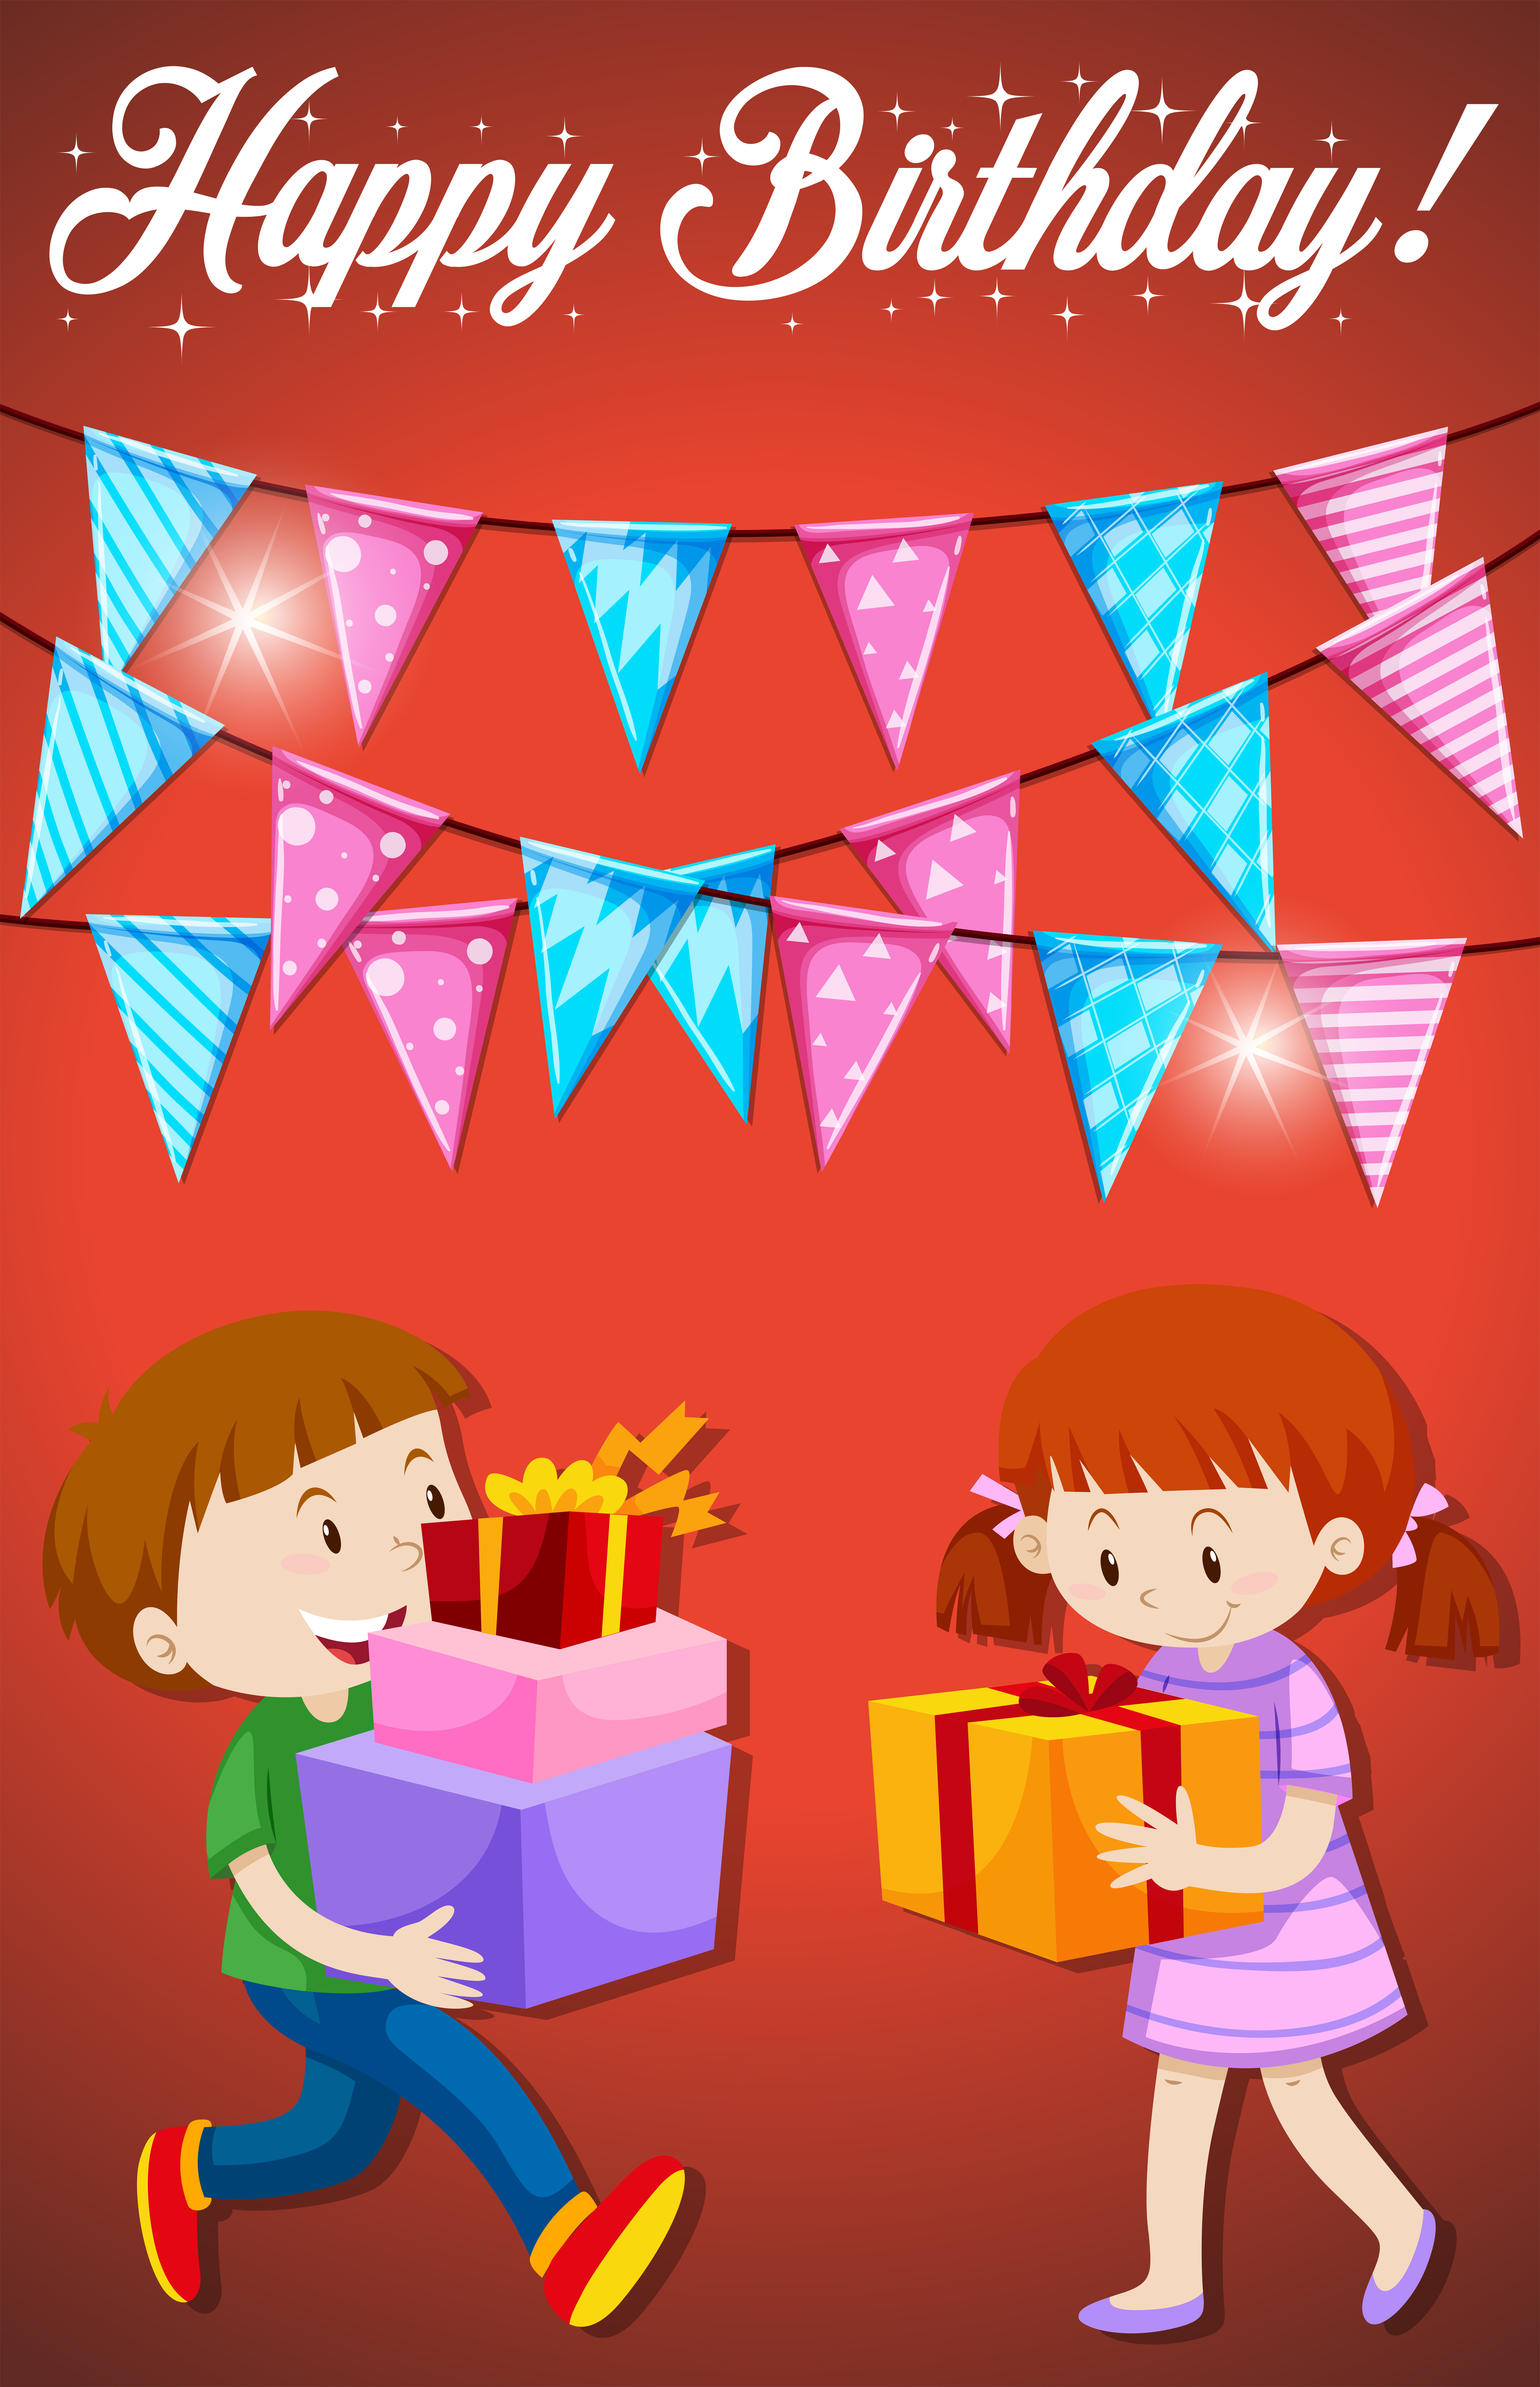 Happy birthday with children card - Download Free Vectors ...